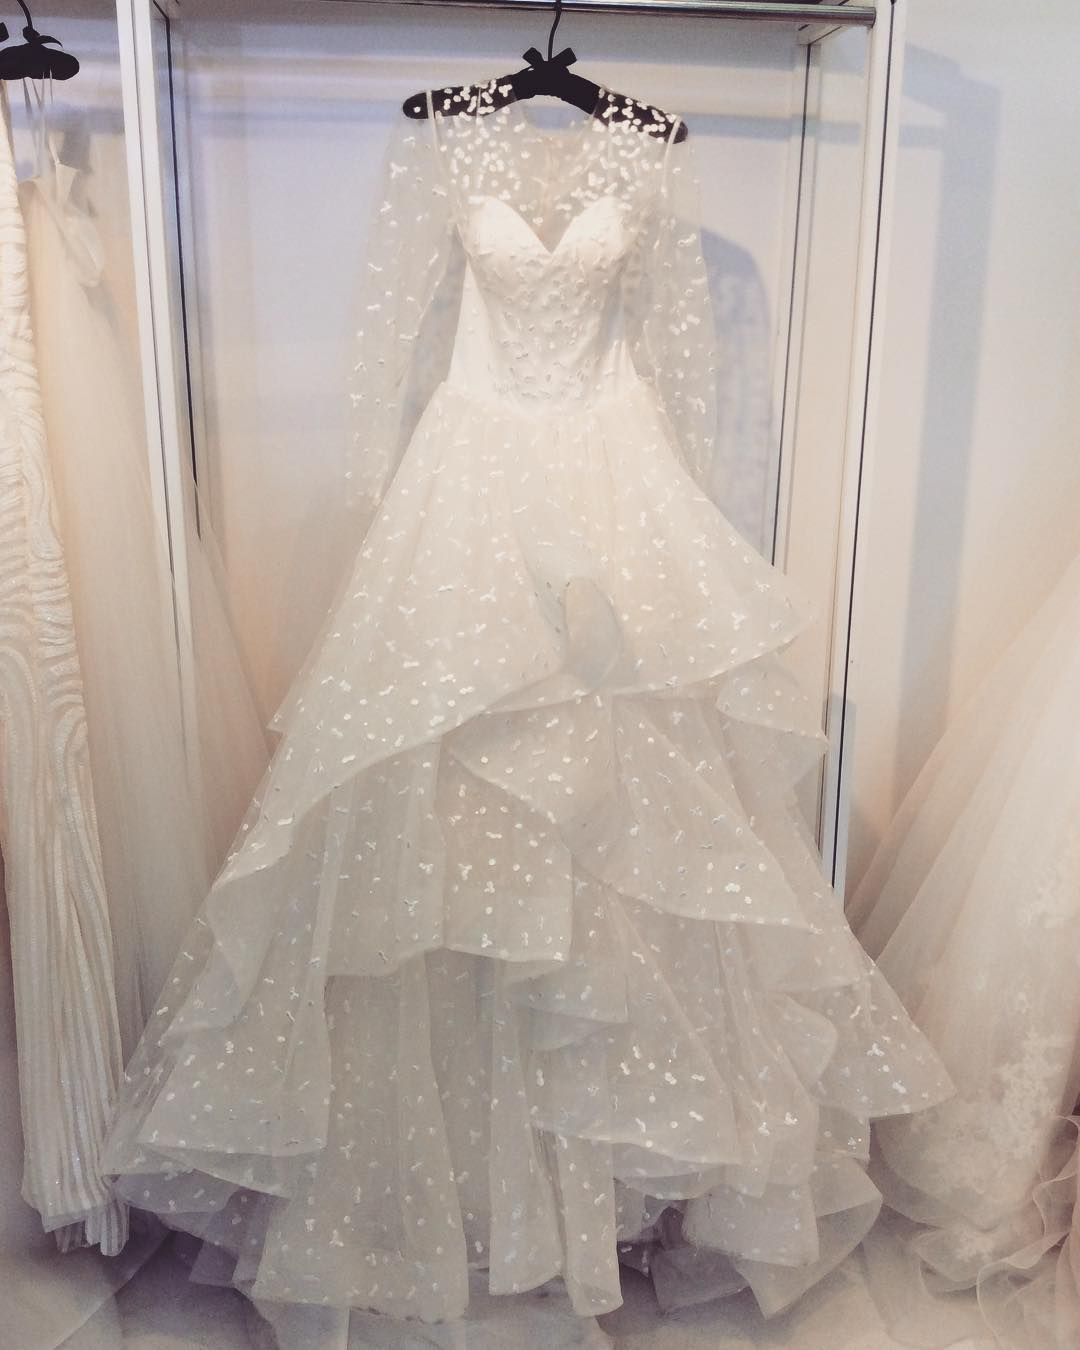 This showstopper is from elizaandethans debut bridal collection this showstopper is from elizaandethans debut bridal collection their bridesmaid dresses are already widely ombrellifo Choice Image